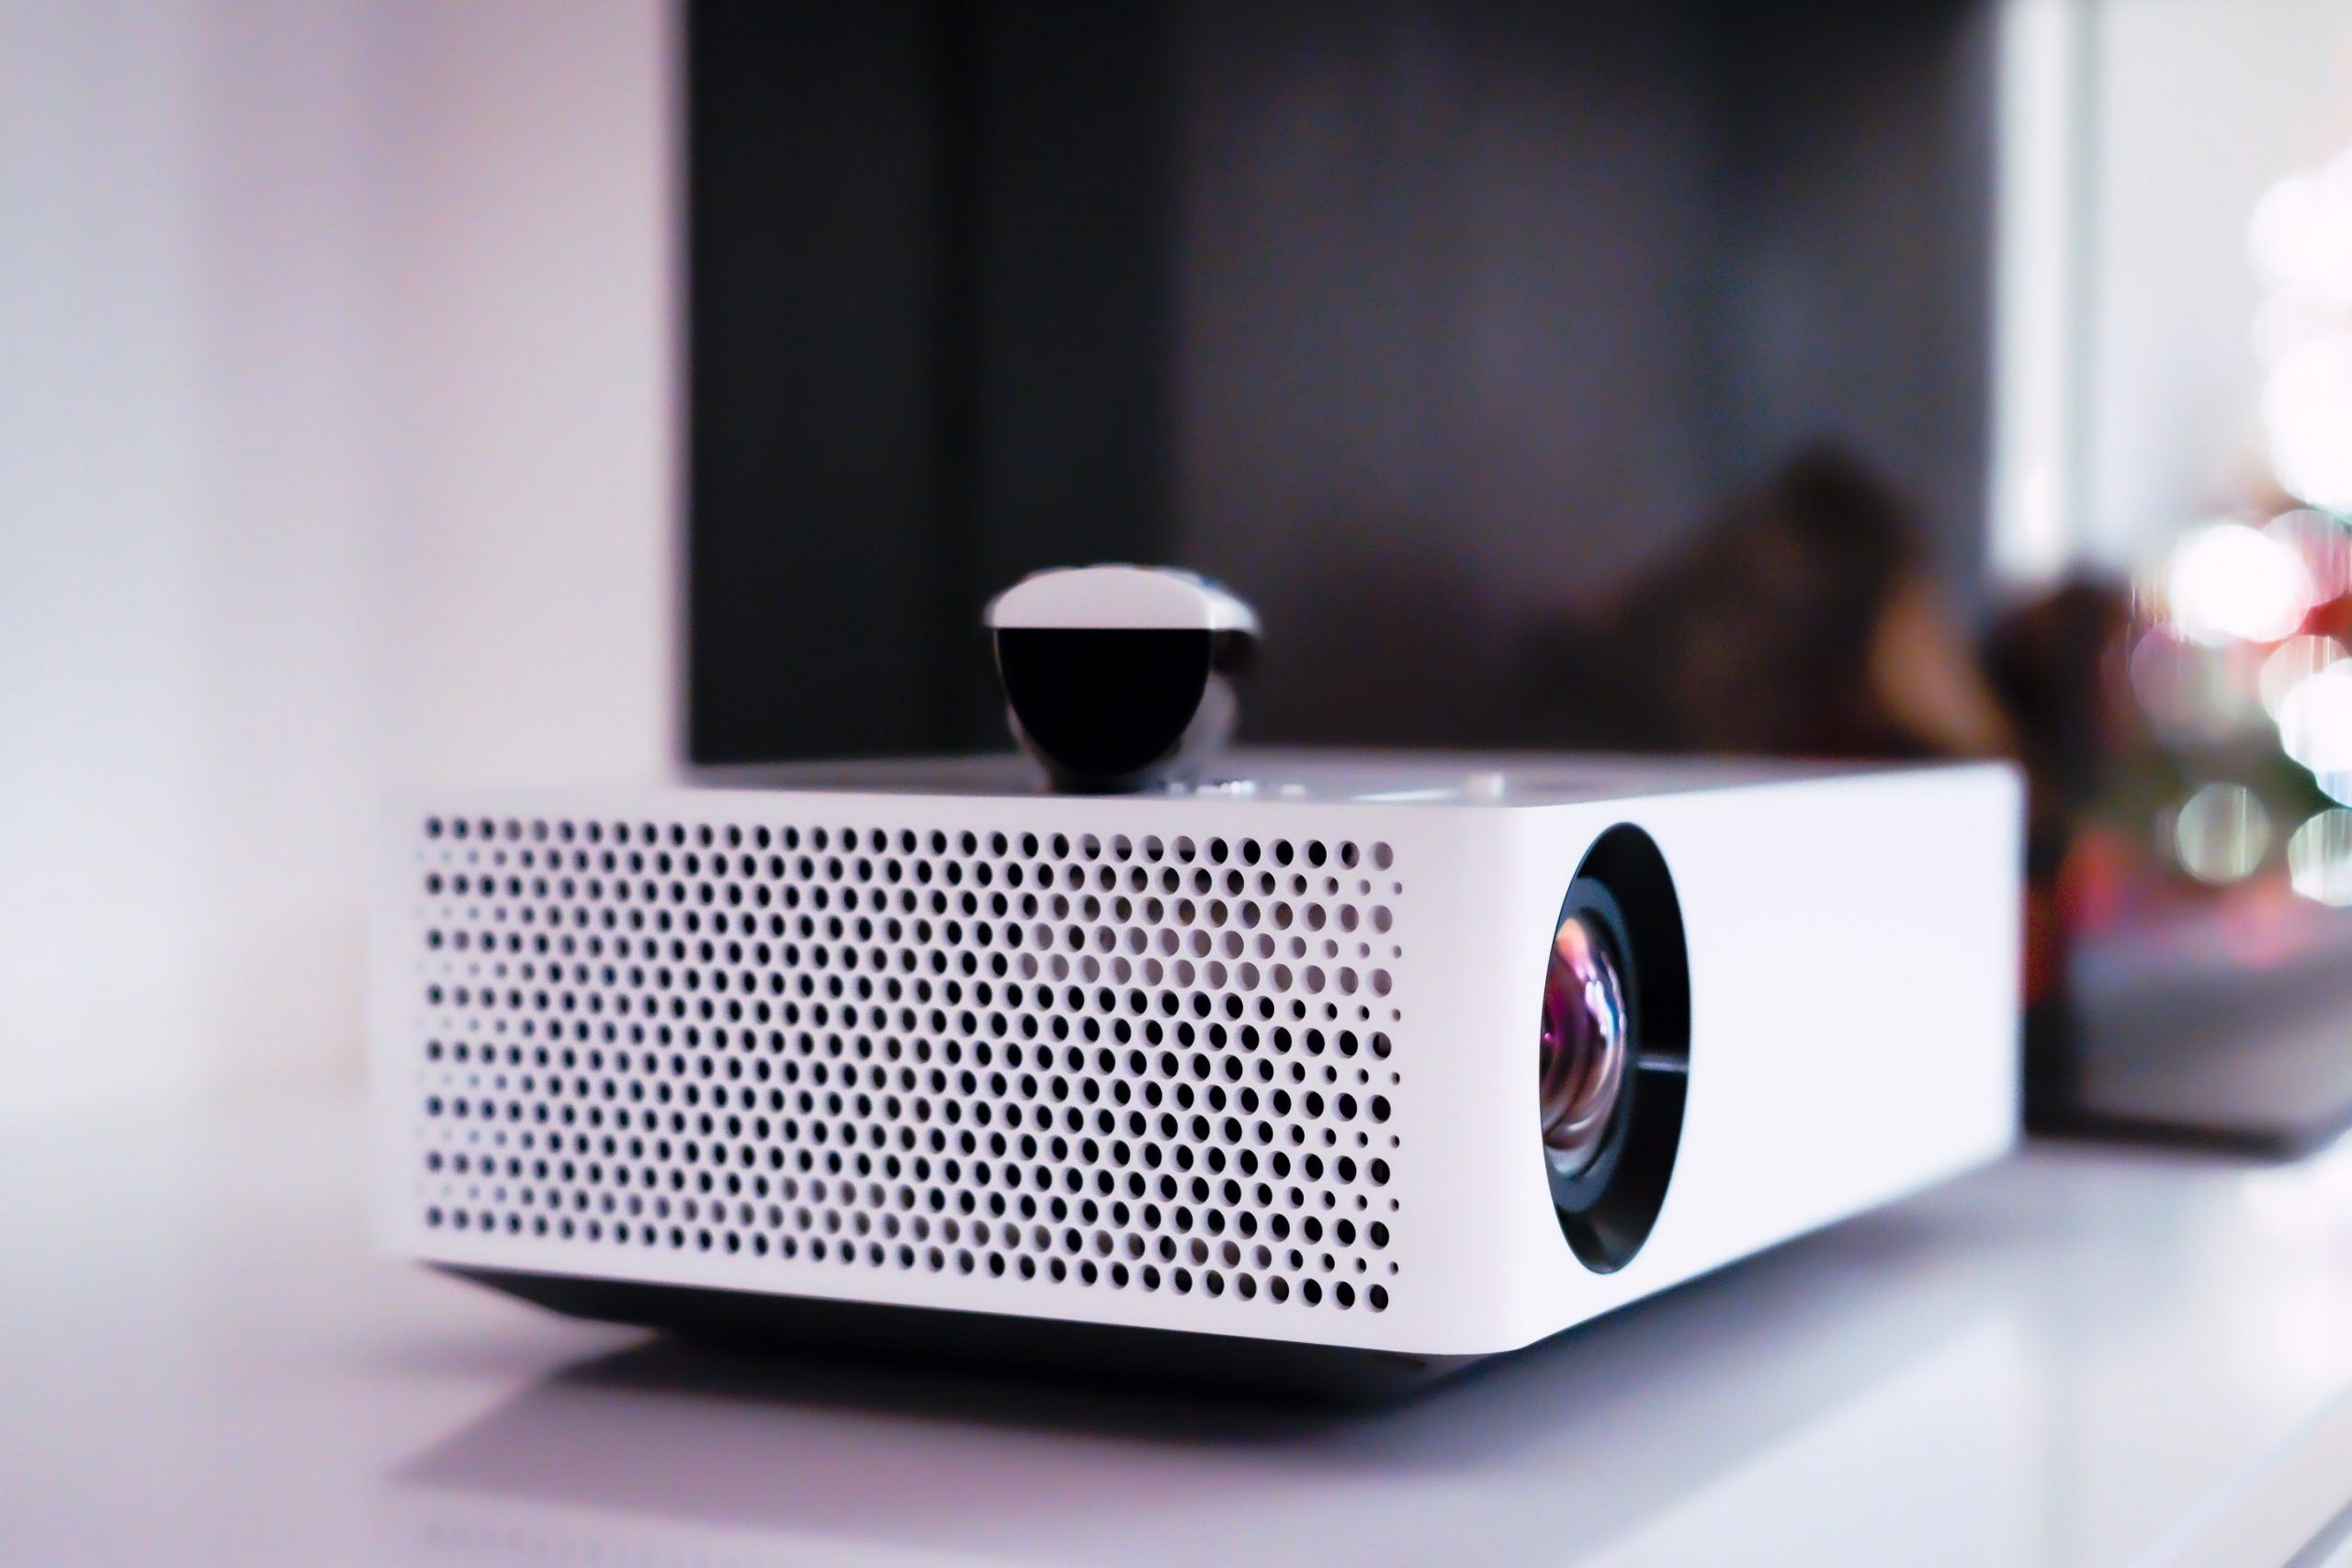 LG Beamer projector. Photo by Dylan Calluy on Unsplash